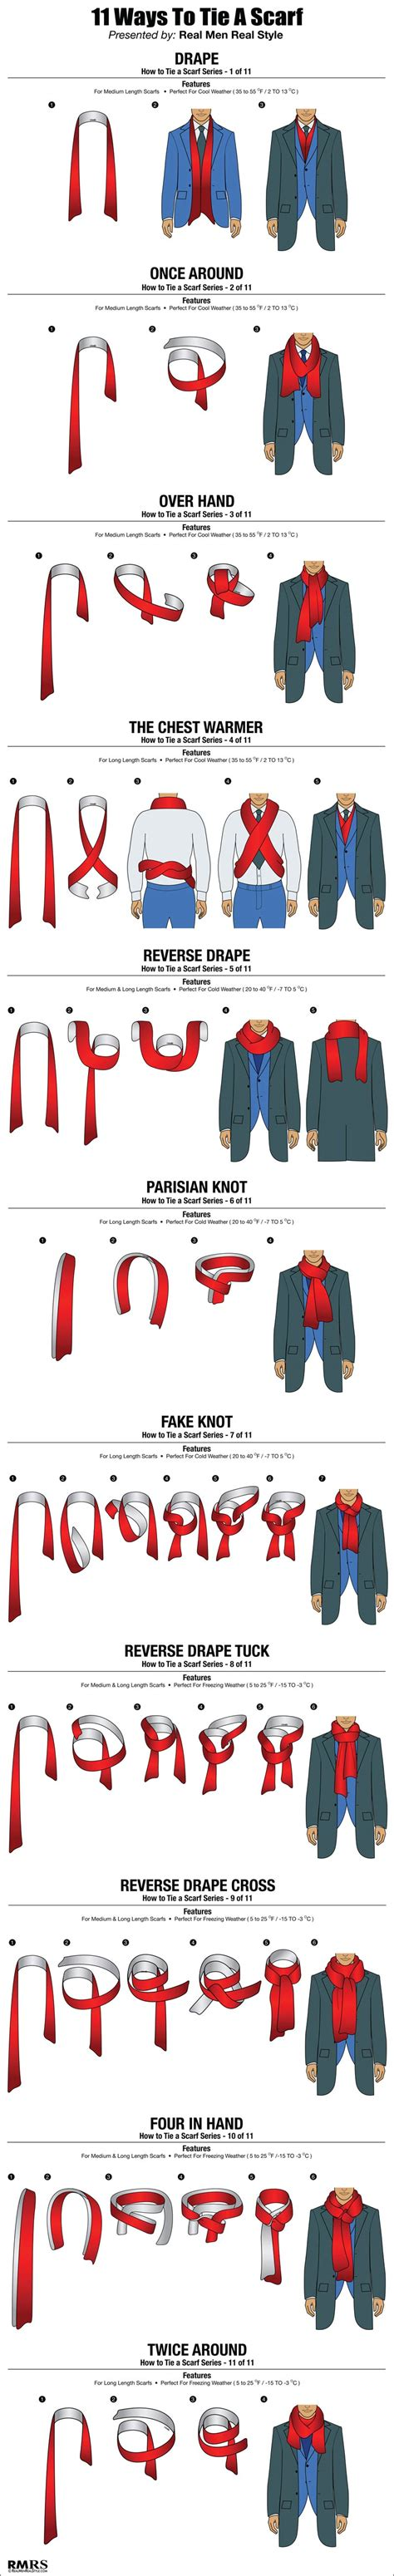 11 ways a guy can tie his scarf the huffington post how to tie a scarf chart 11 masculine ways to tie scarves